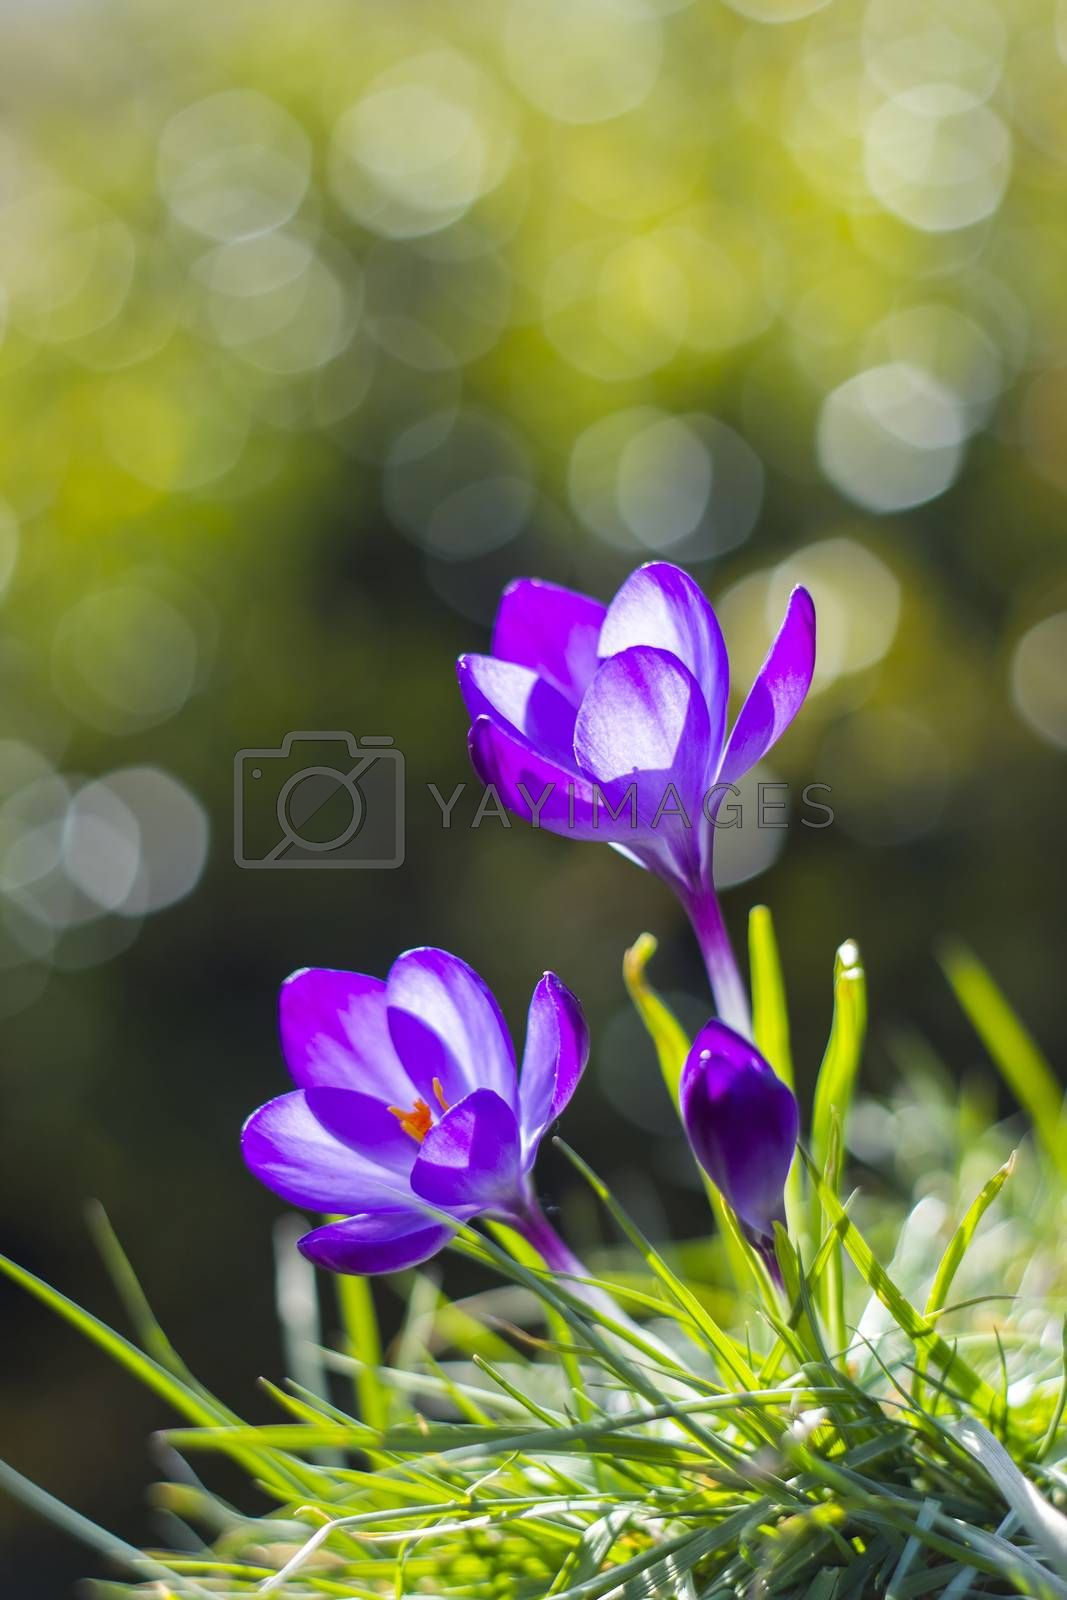 crocus - one of the first spring flowers by miradrozdowski